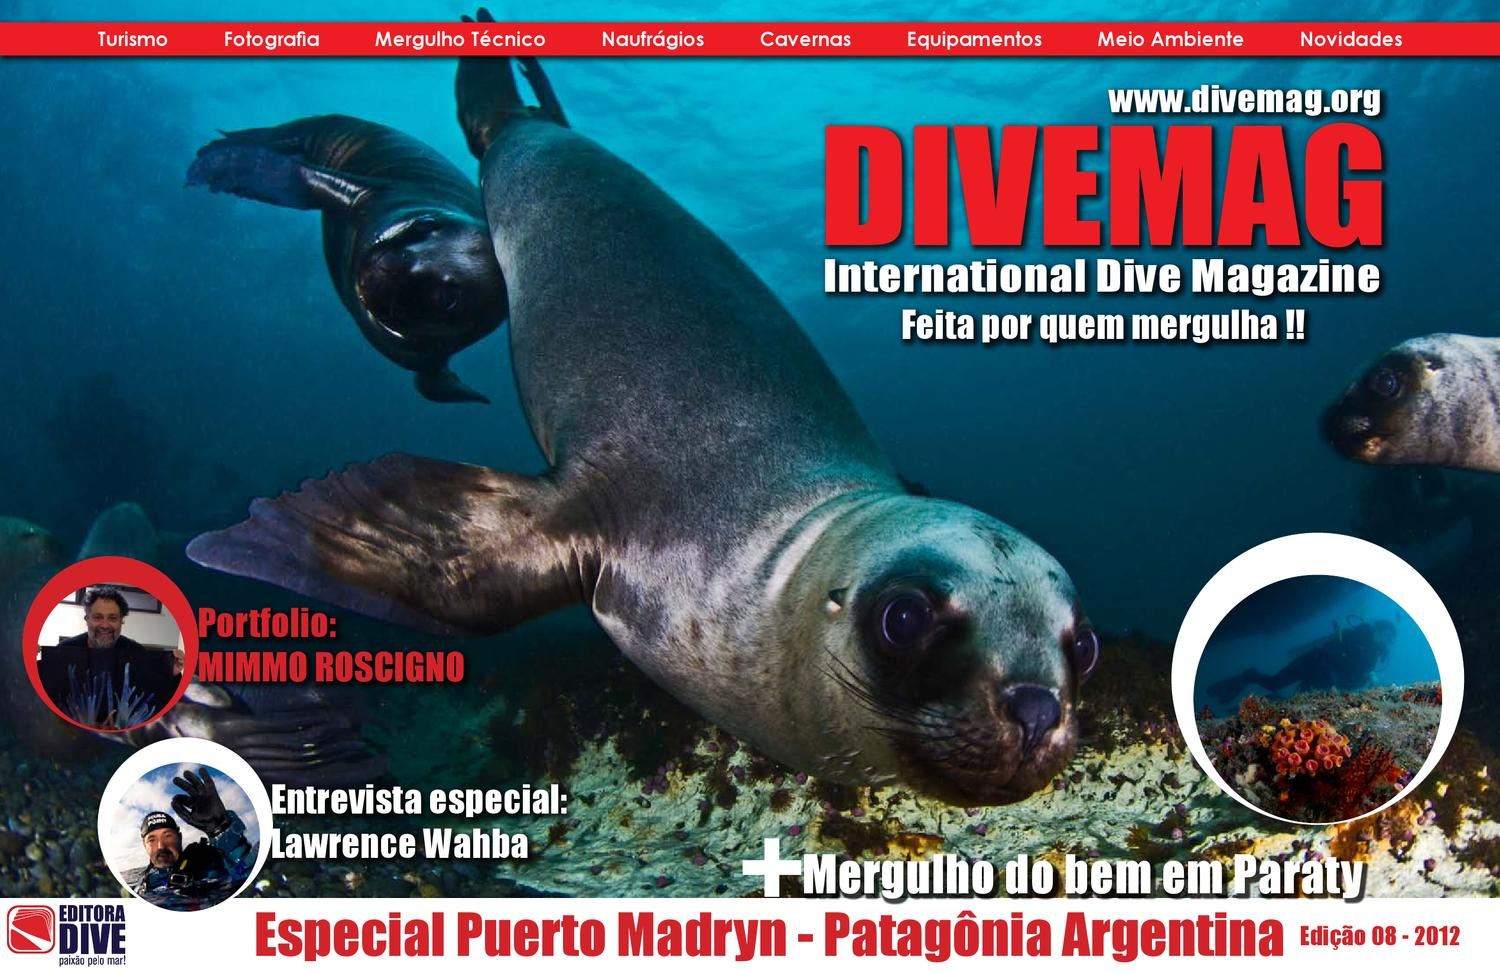 ecfccad0856 DIVEMAG